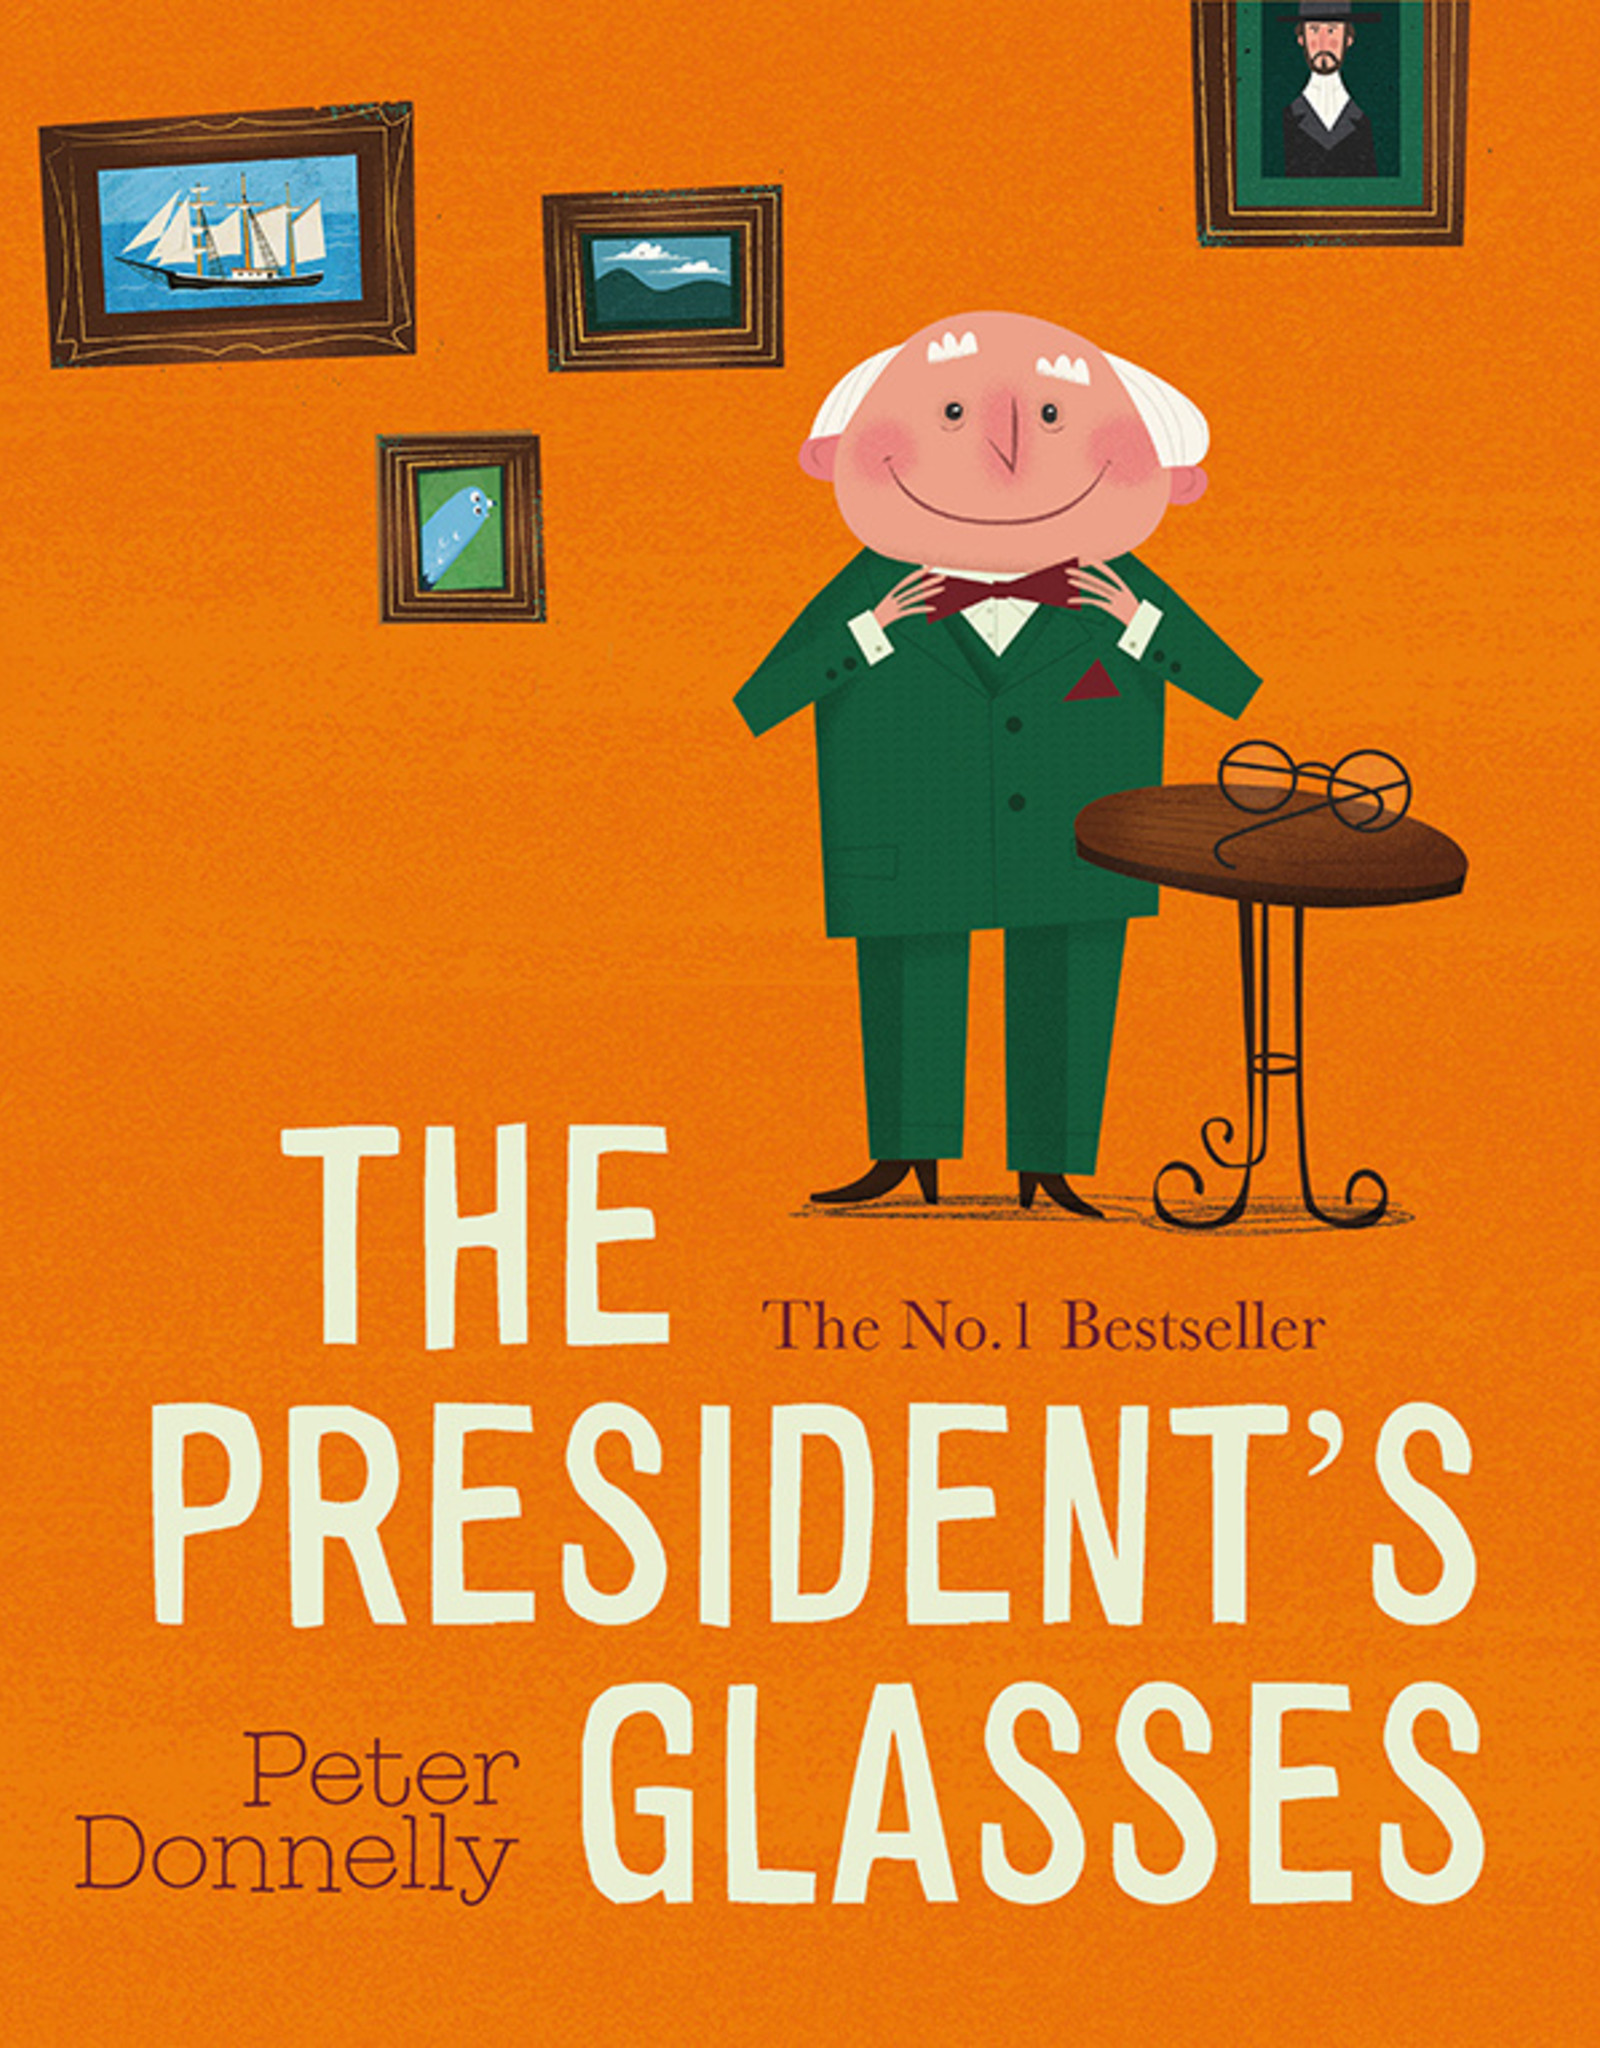 Argosy The President's Glasses - Peter Donnelly